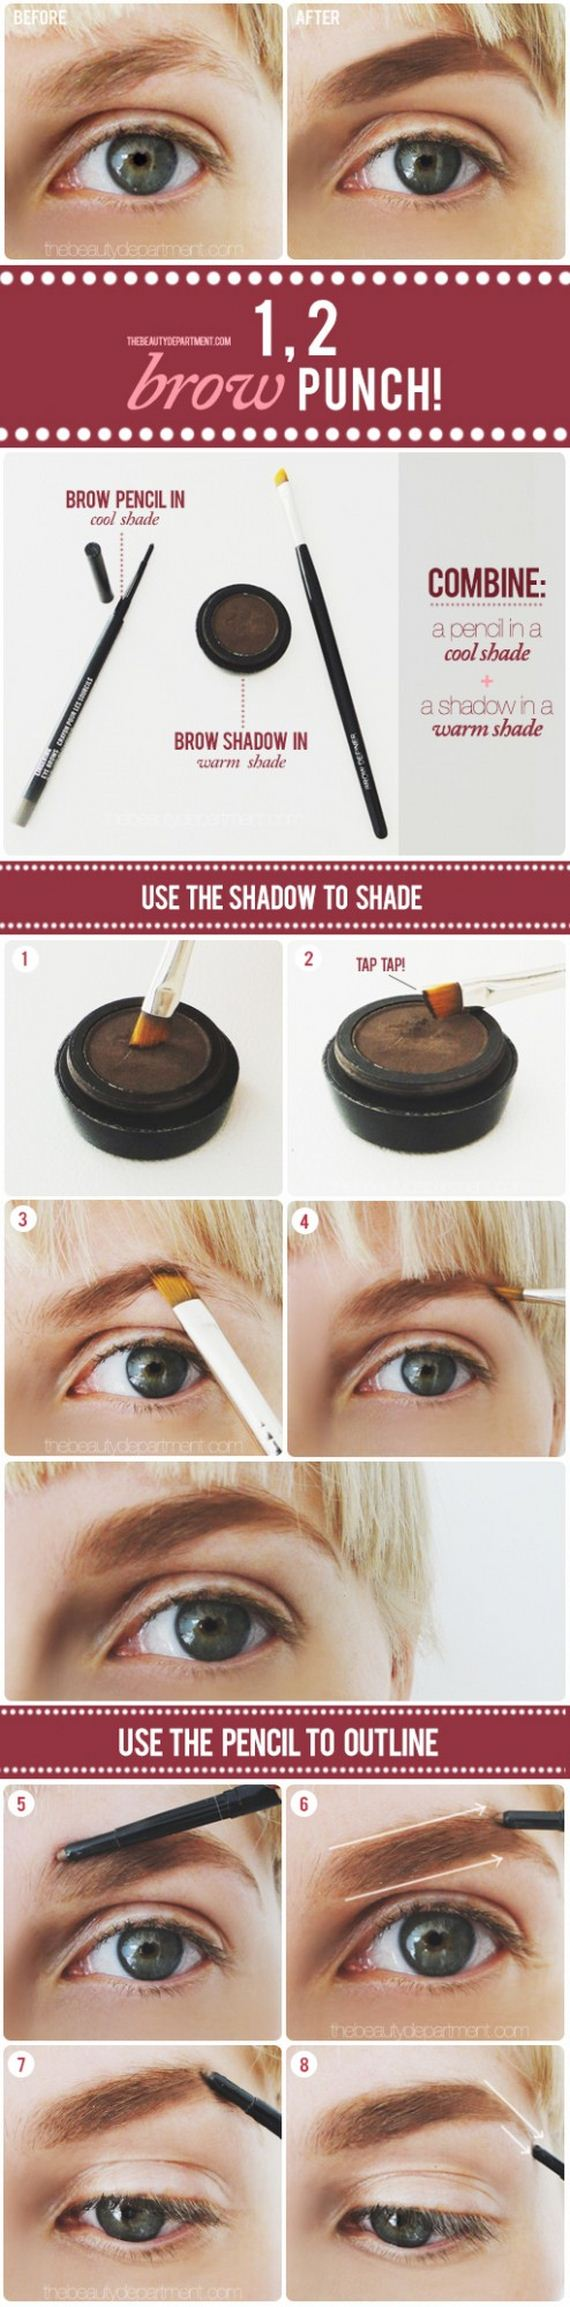 05-useful-makeup